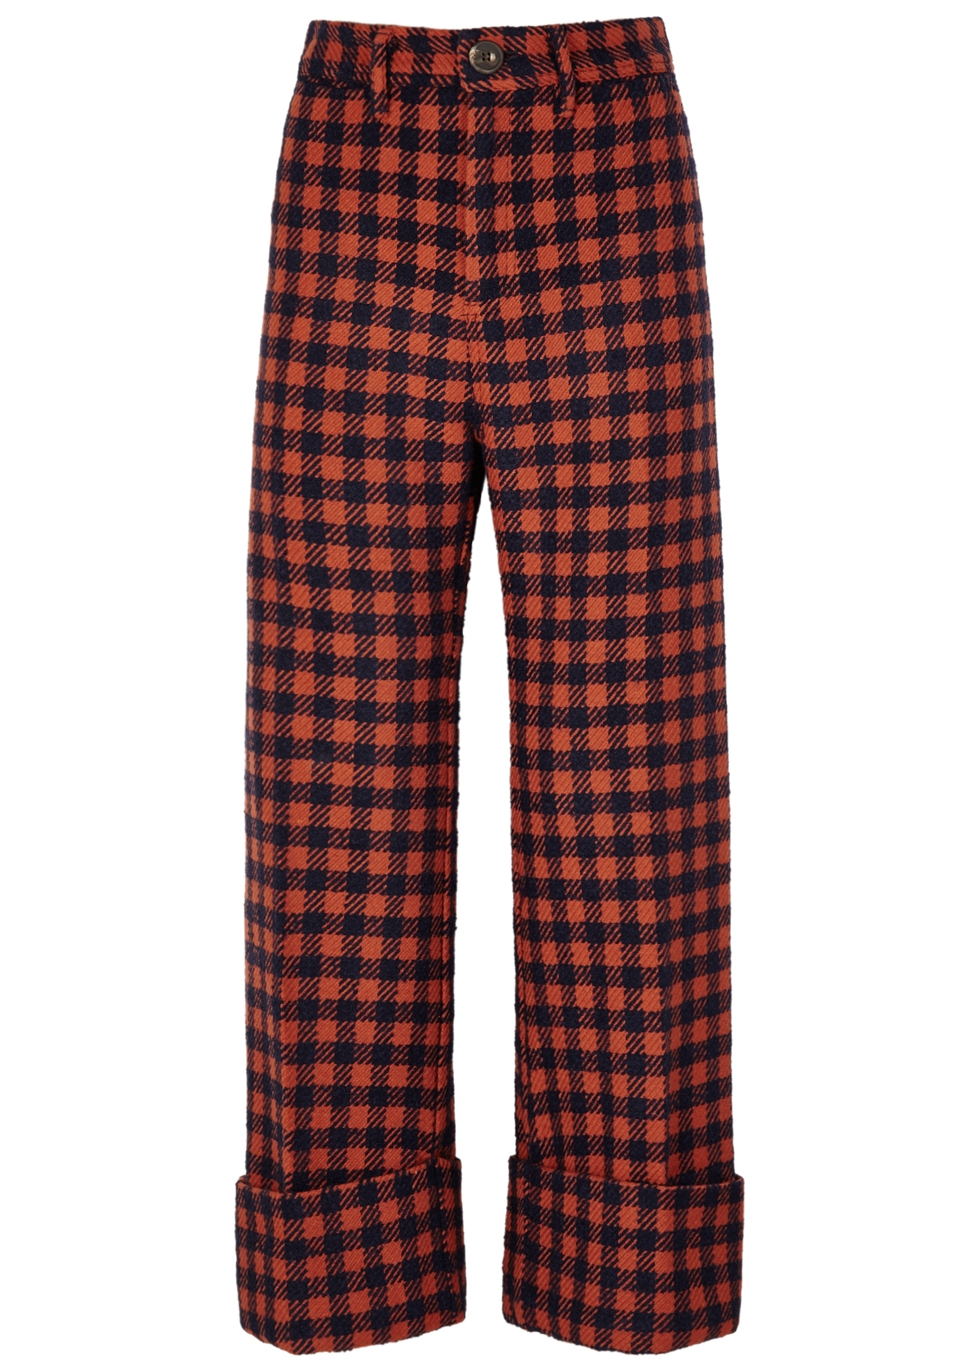 SEA NY Ethno Pop Checked Wool-Blend Trousers in Orange